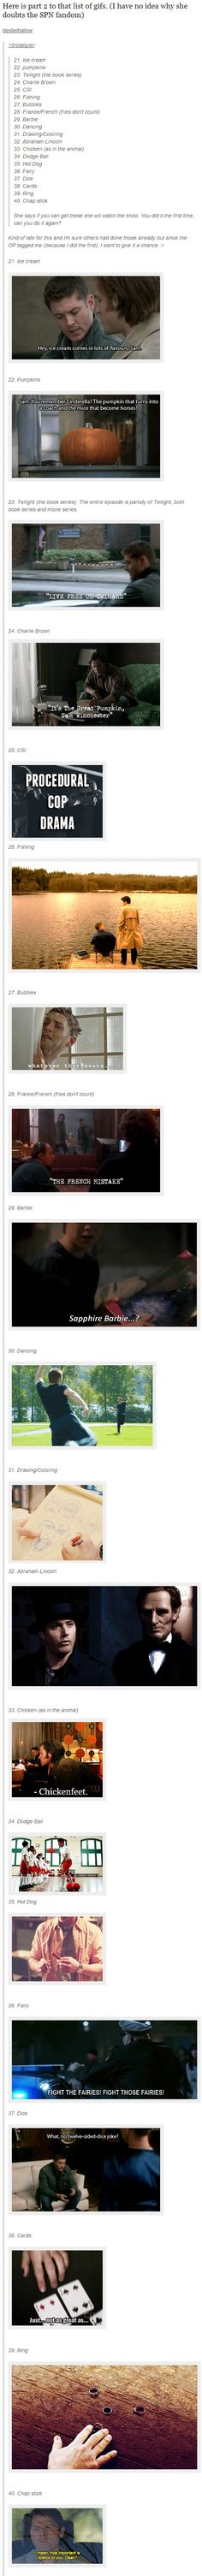 (gif set) GIF for Everything ||| Supernatural [Good job, fandom!]